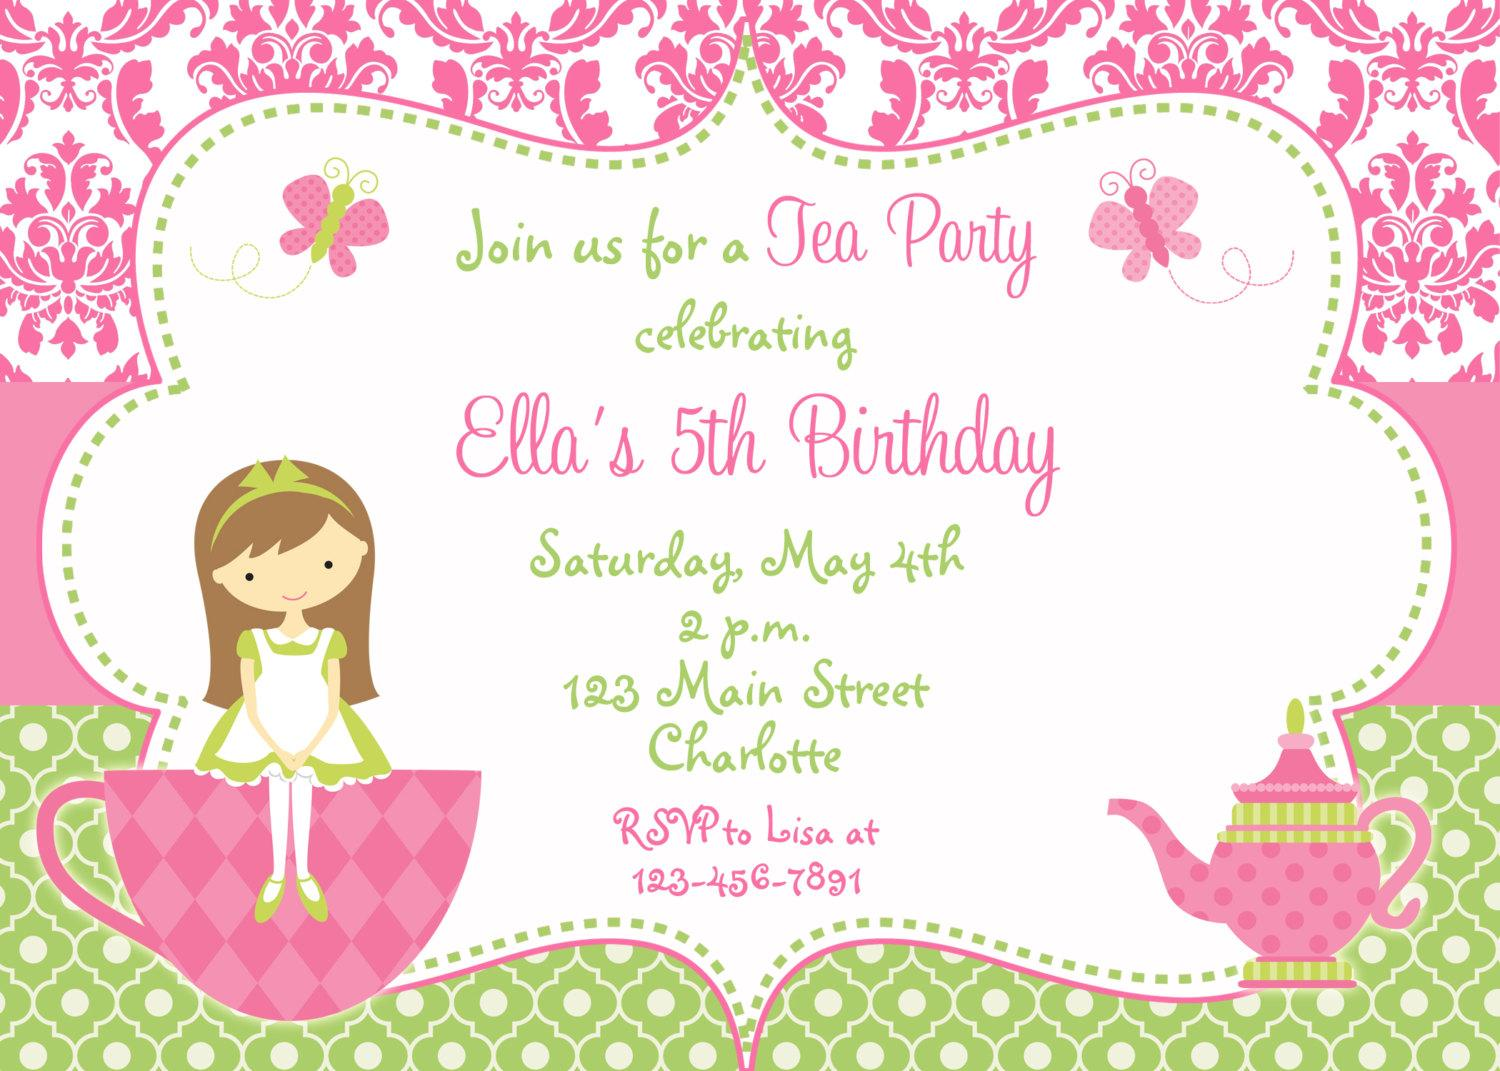 Children's Tea Party Invitation Template